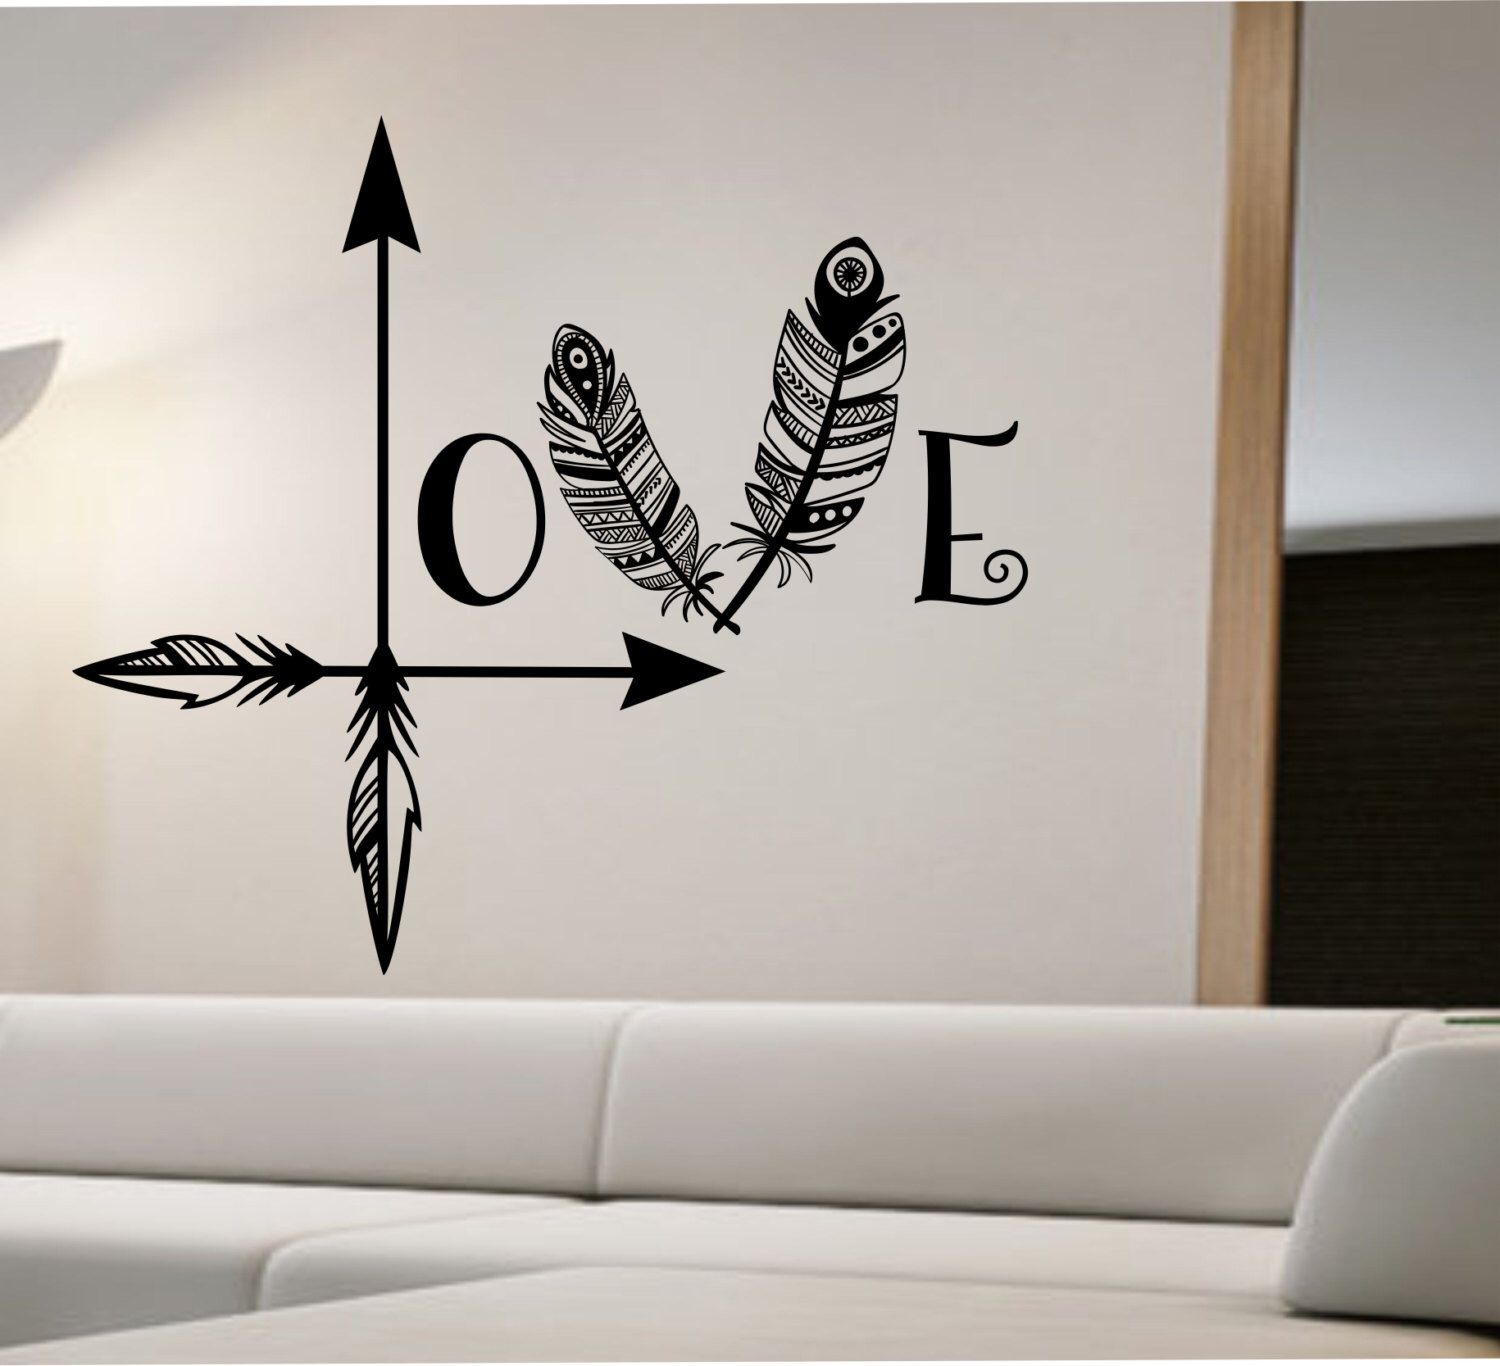 Modern Vinyl Wall Art Arrow Feather Love Wall Decal Namaste Vinyl Sticker Art